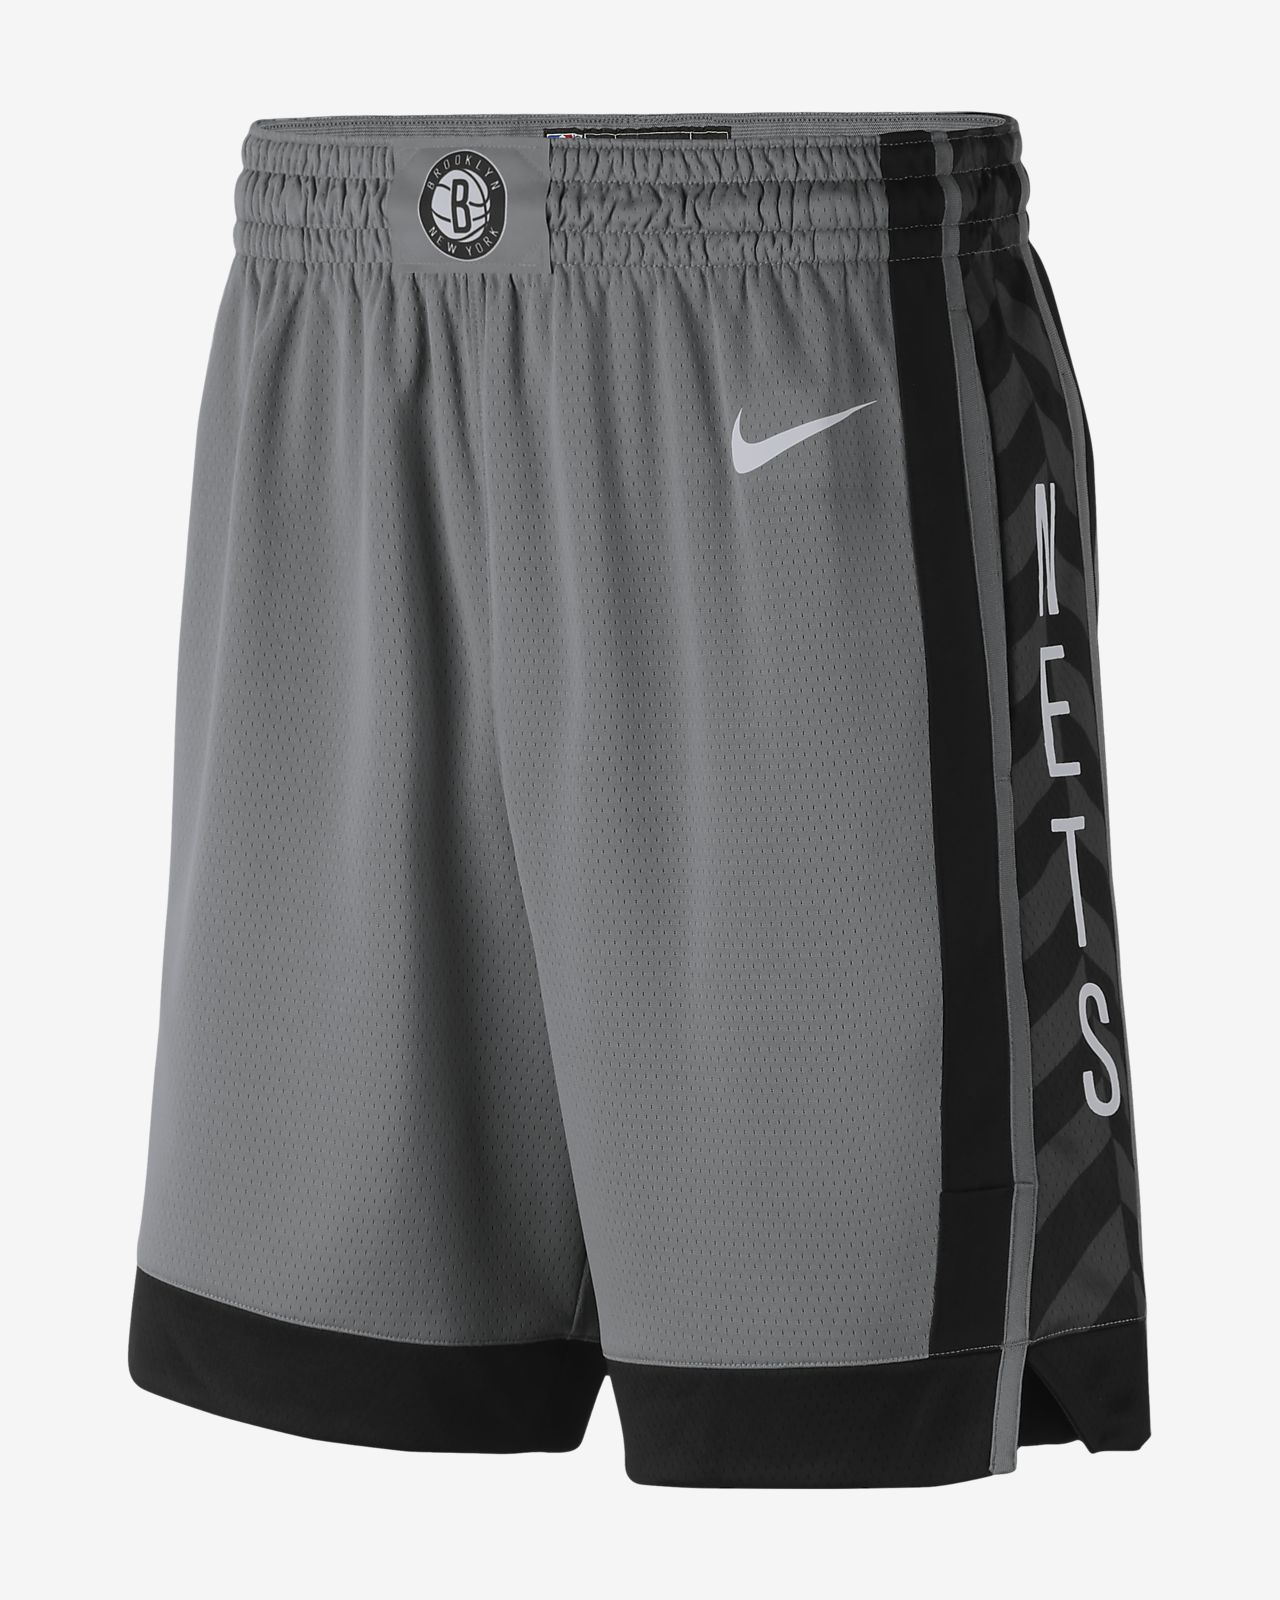 Brooklyn Nets Statement Edition Swingman-Nike NBA-shorts til mænd